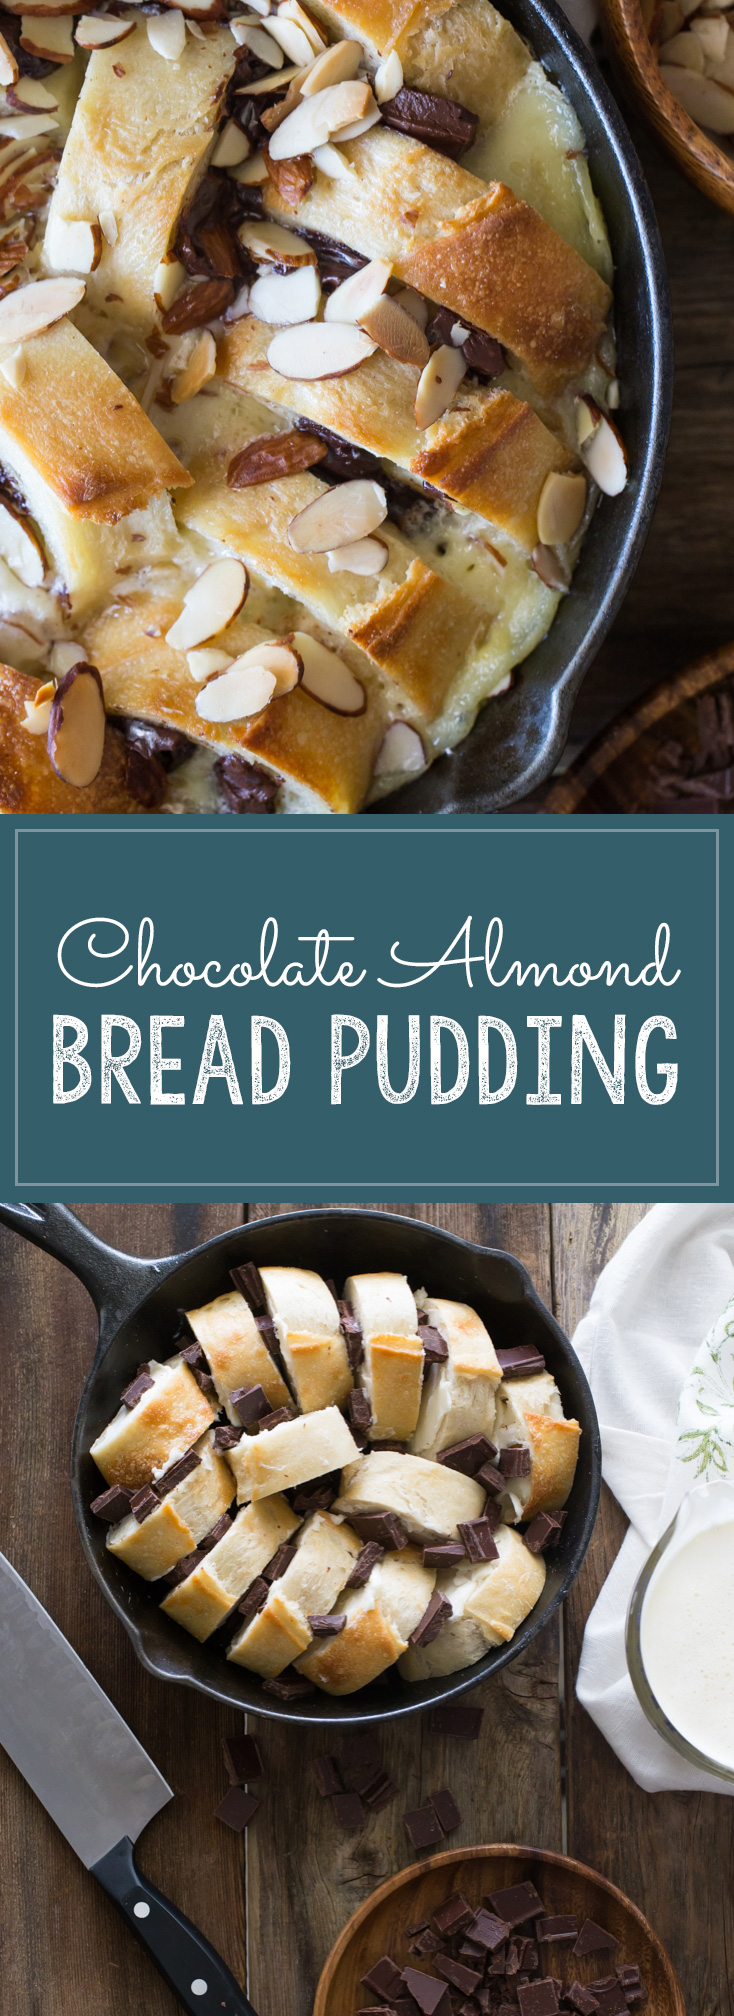 It's decadent, warm and cozy with gooey chocolate and almond flavoring. So good!